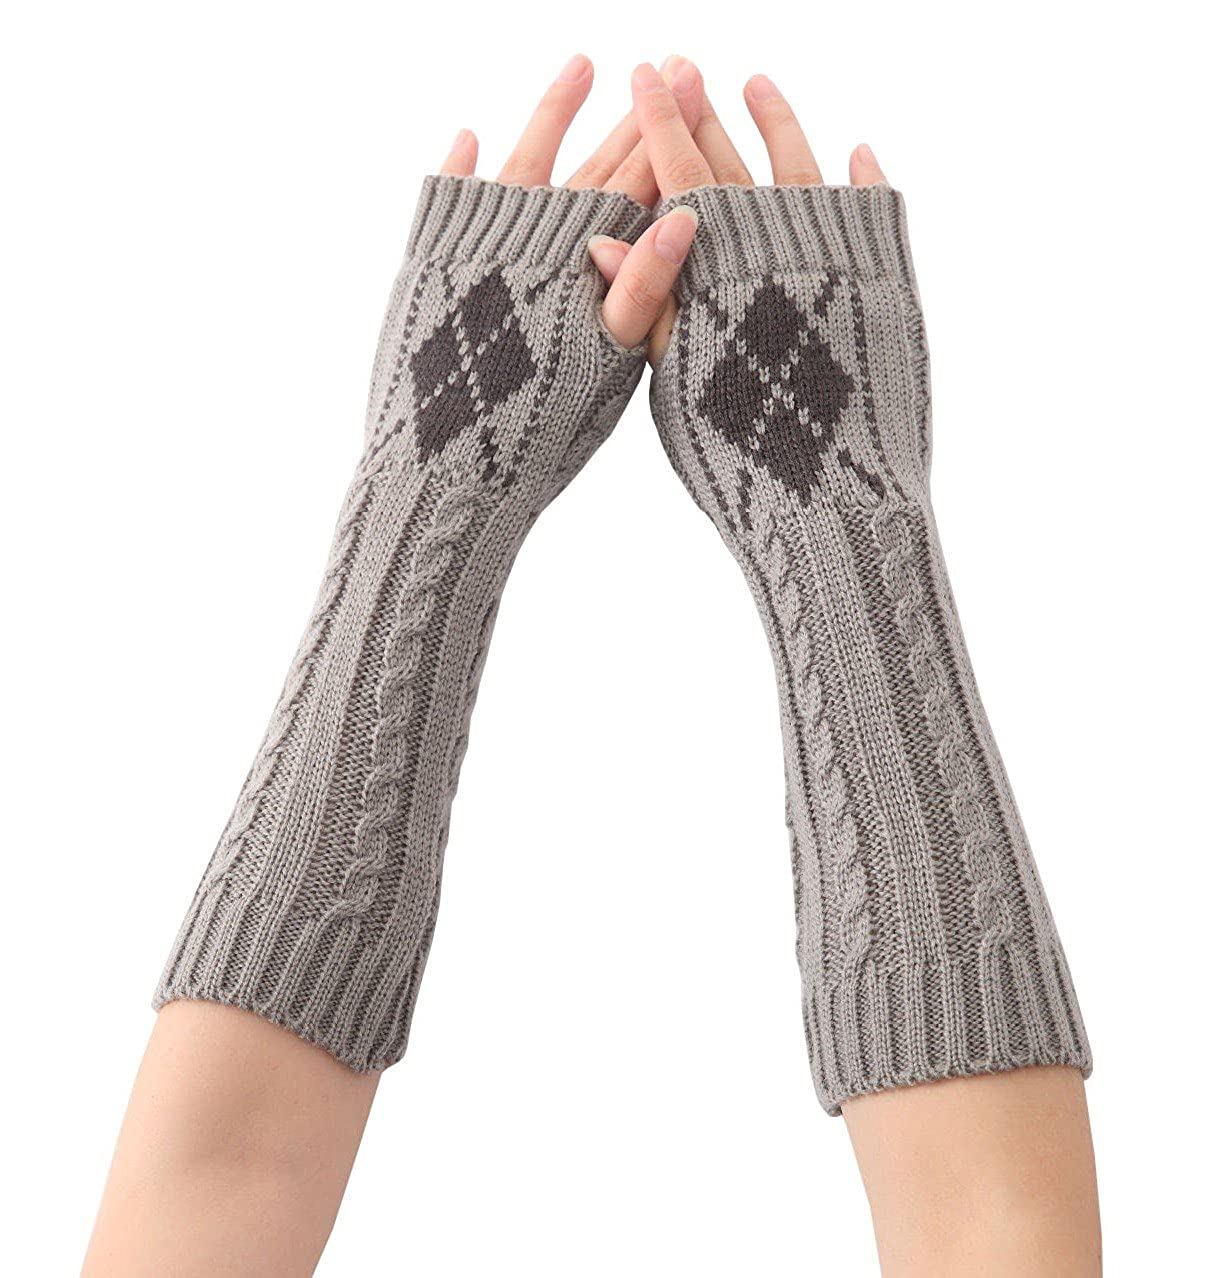 Angel Wardrobe Knit Long Fingerless Thumb Hole Arm Warmers